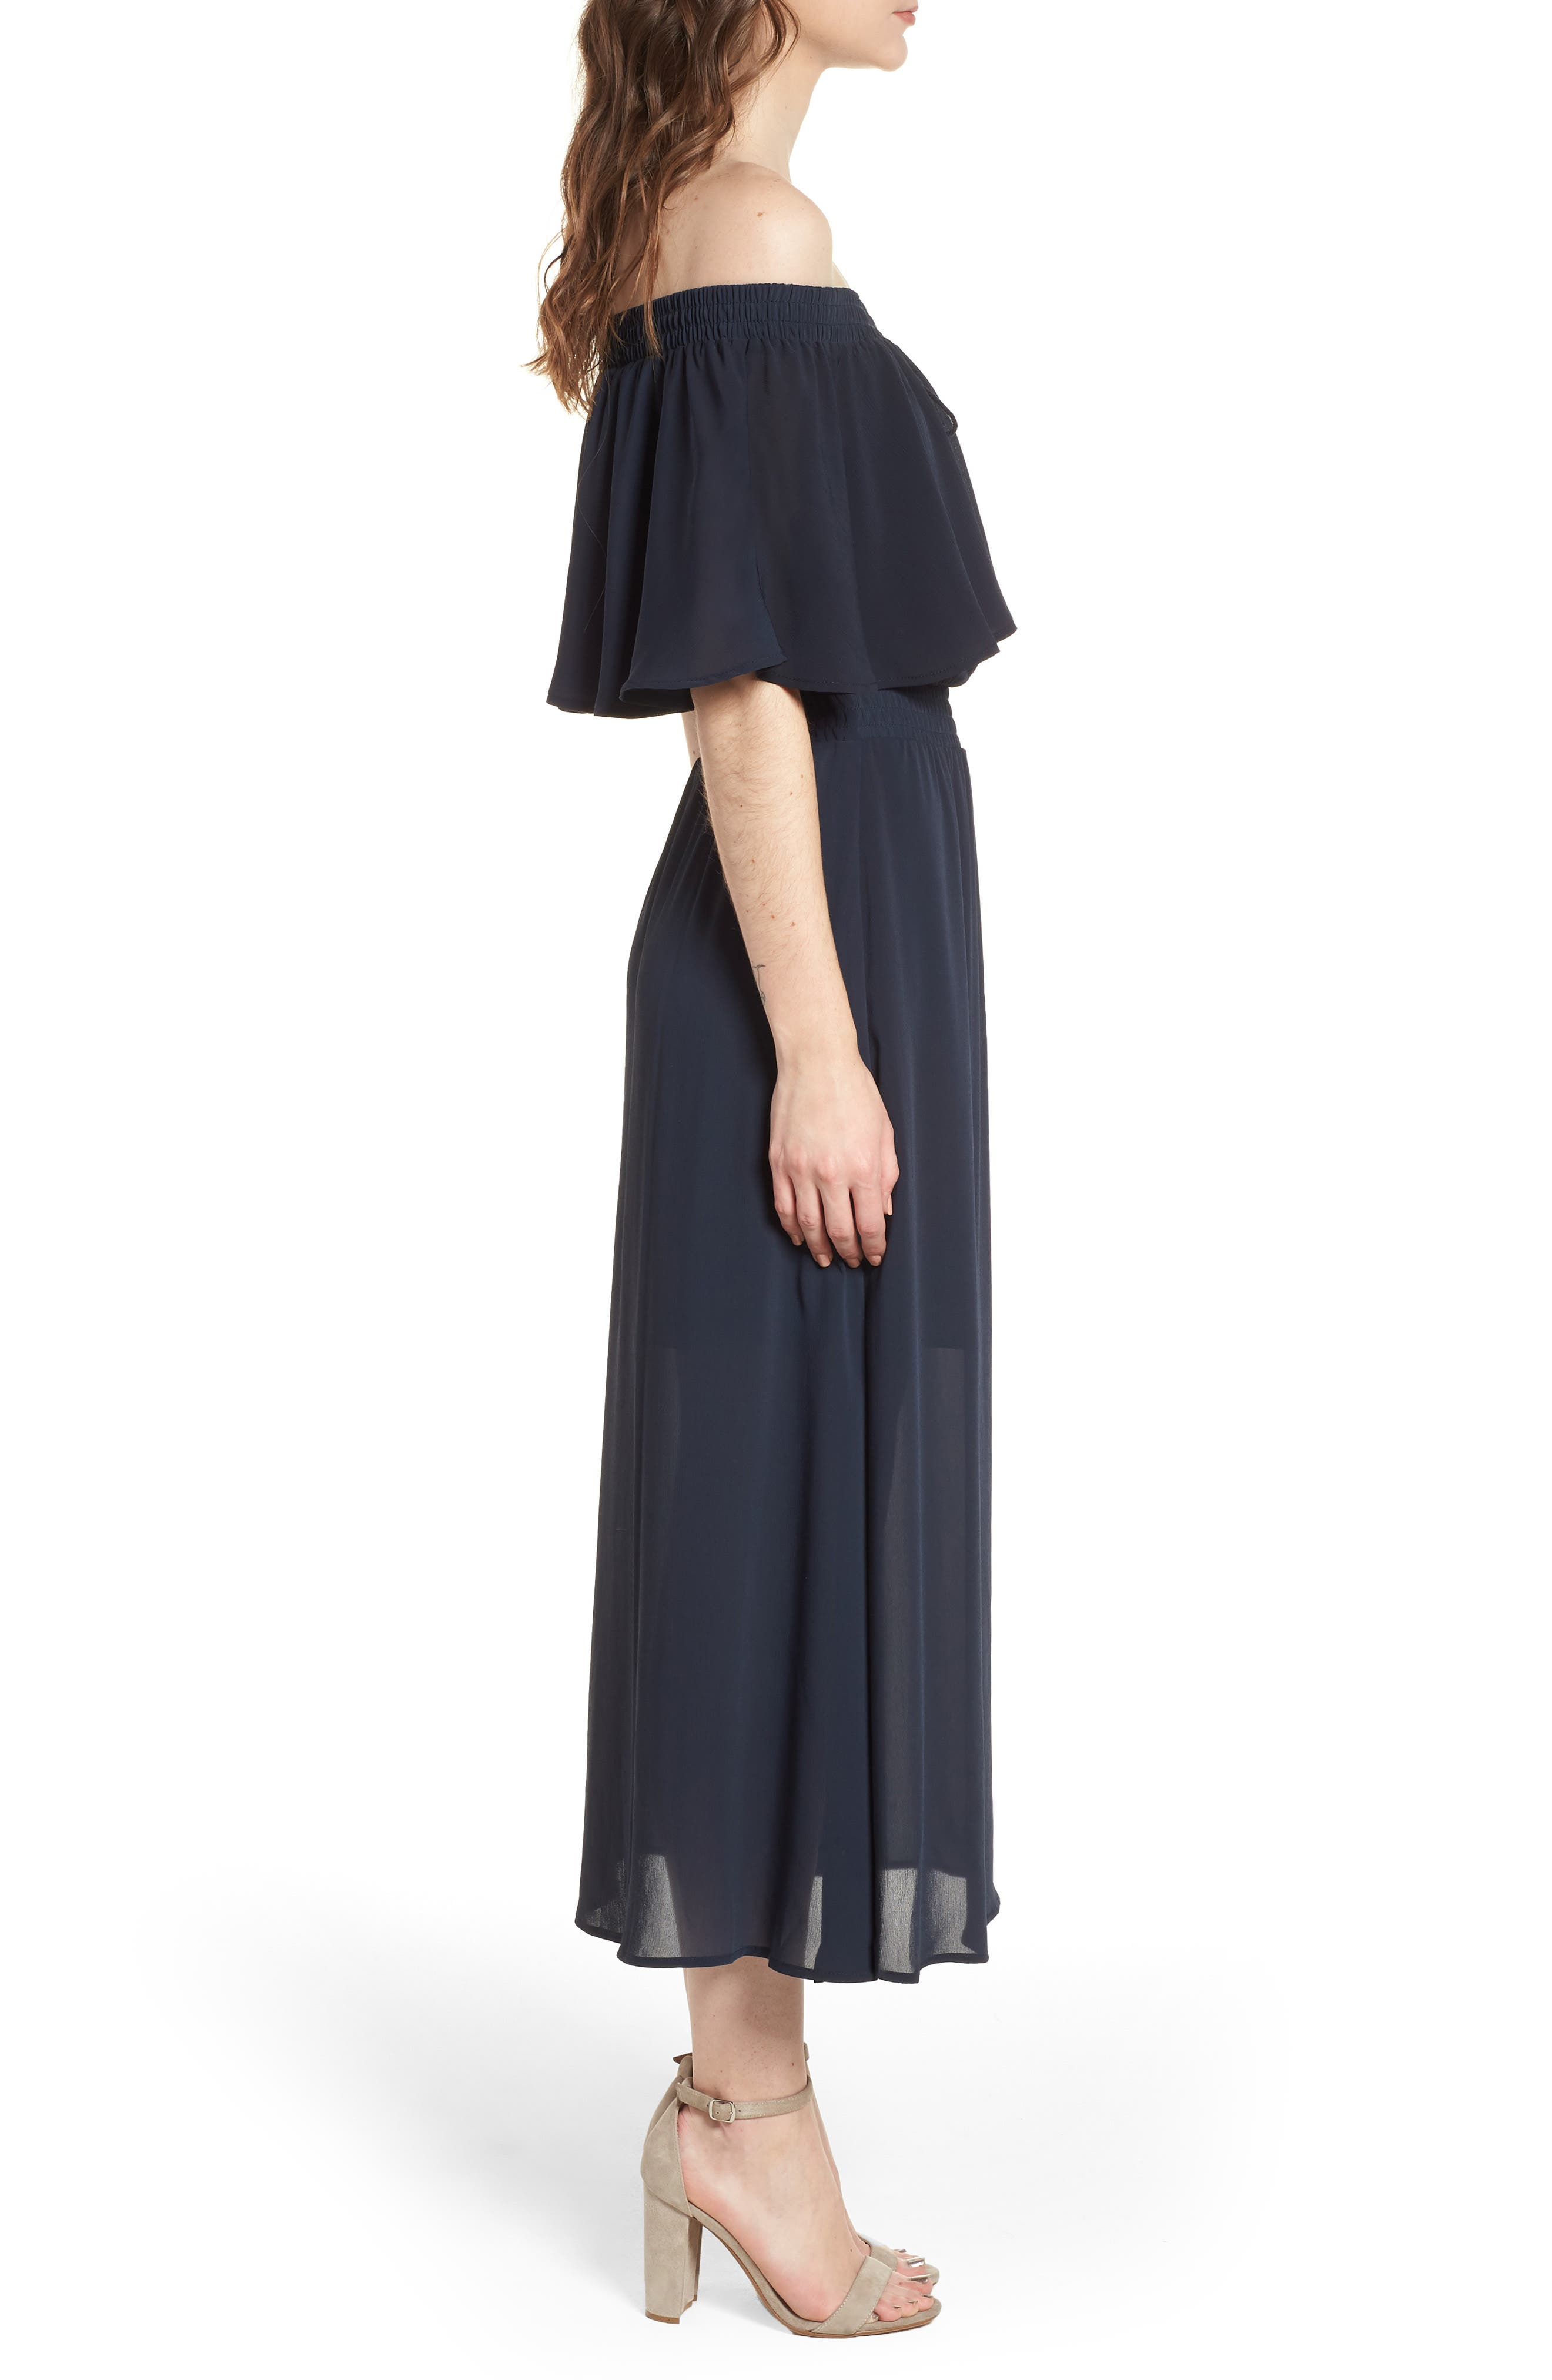 Touch the Sun Off the Shoulder Dress,                             Alternate thumbnail 3, color,                             410